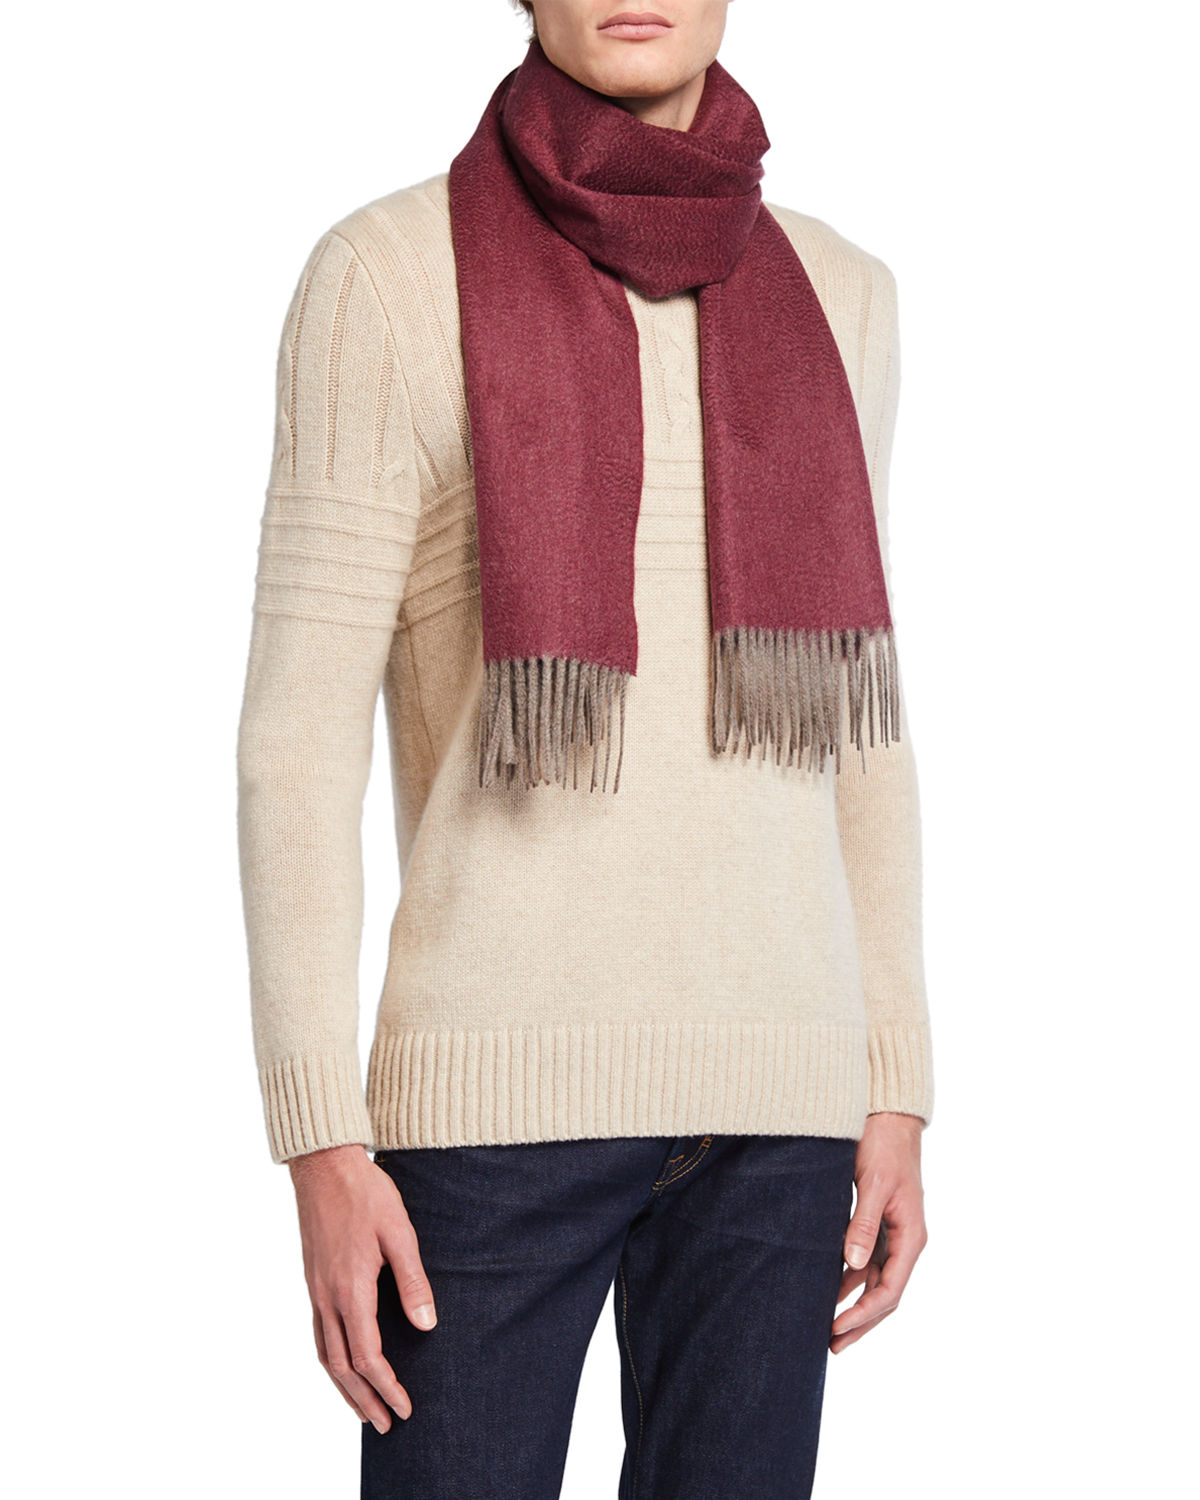 Isaia Accessories MEN'S DOUBLE-FACE CASHMERE SCARF